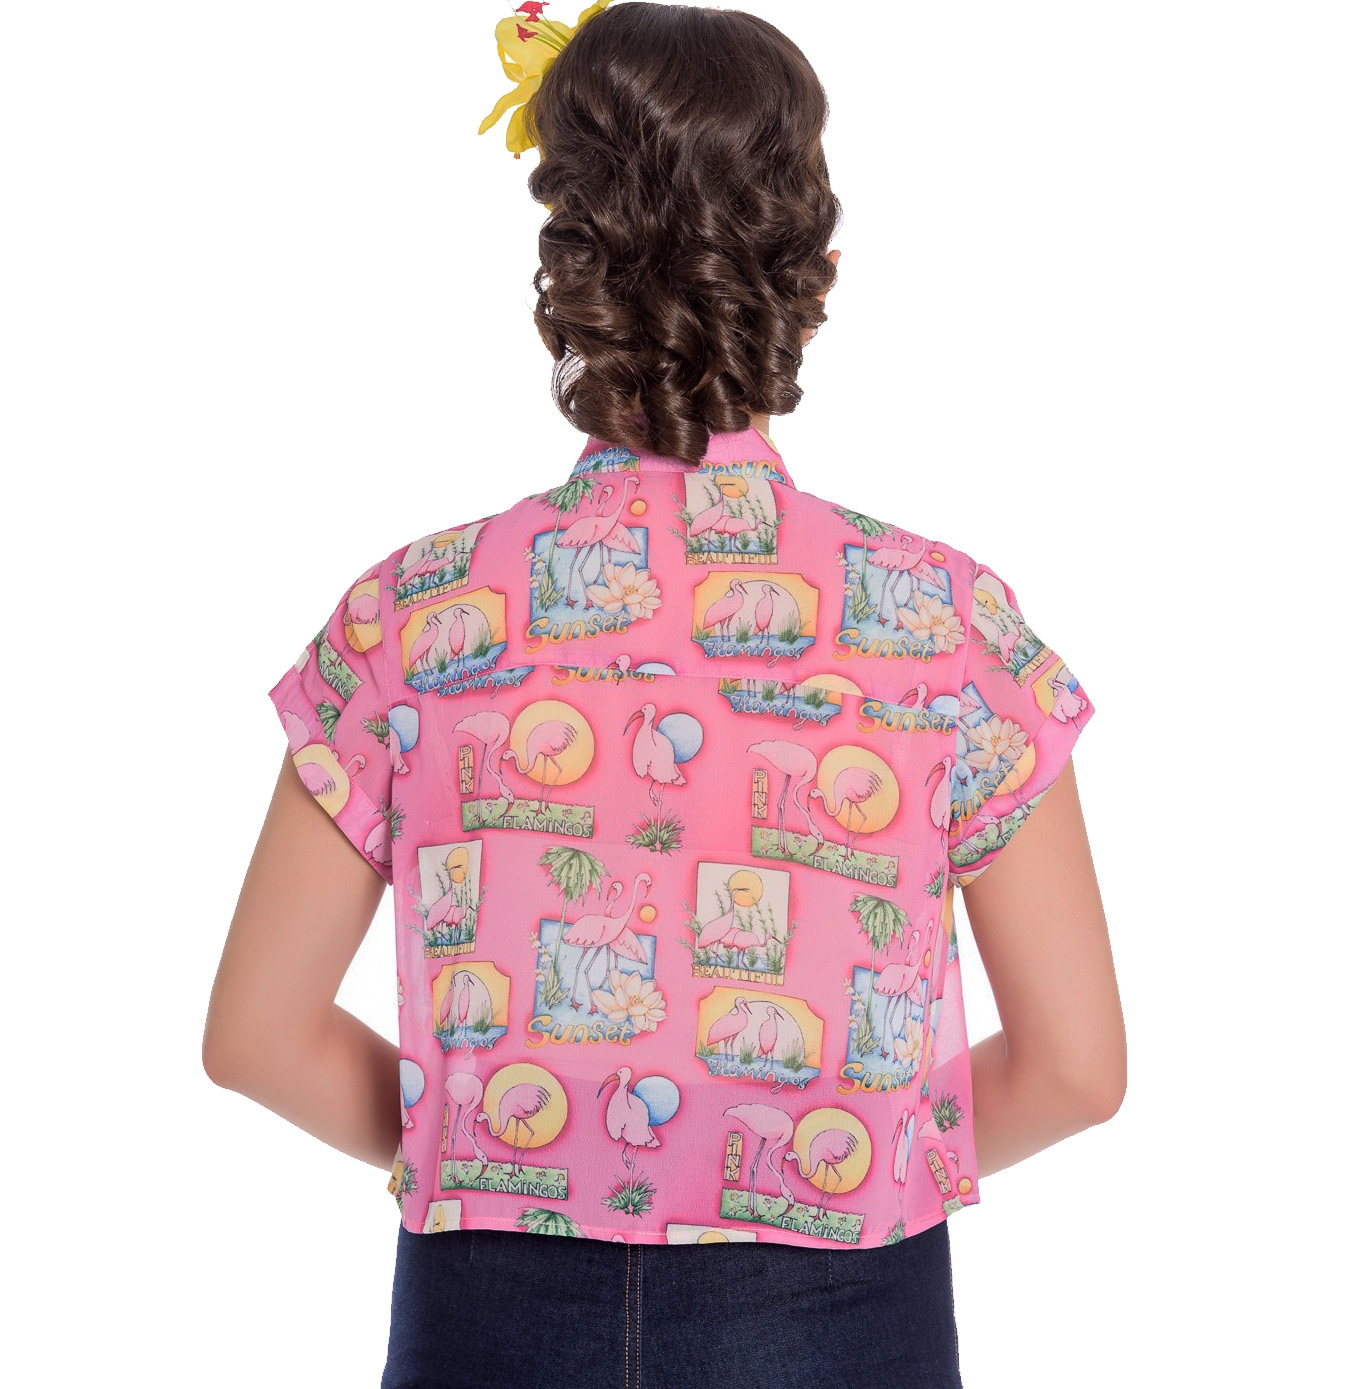 thumbnail 36 - Hell Bunny 50s Retro Top Pink Flamingo MAXINE Cropped Blouse Shirt All Sizes